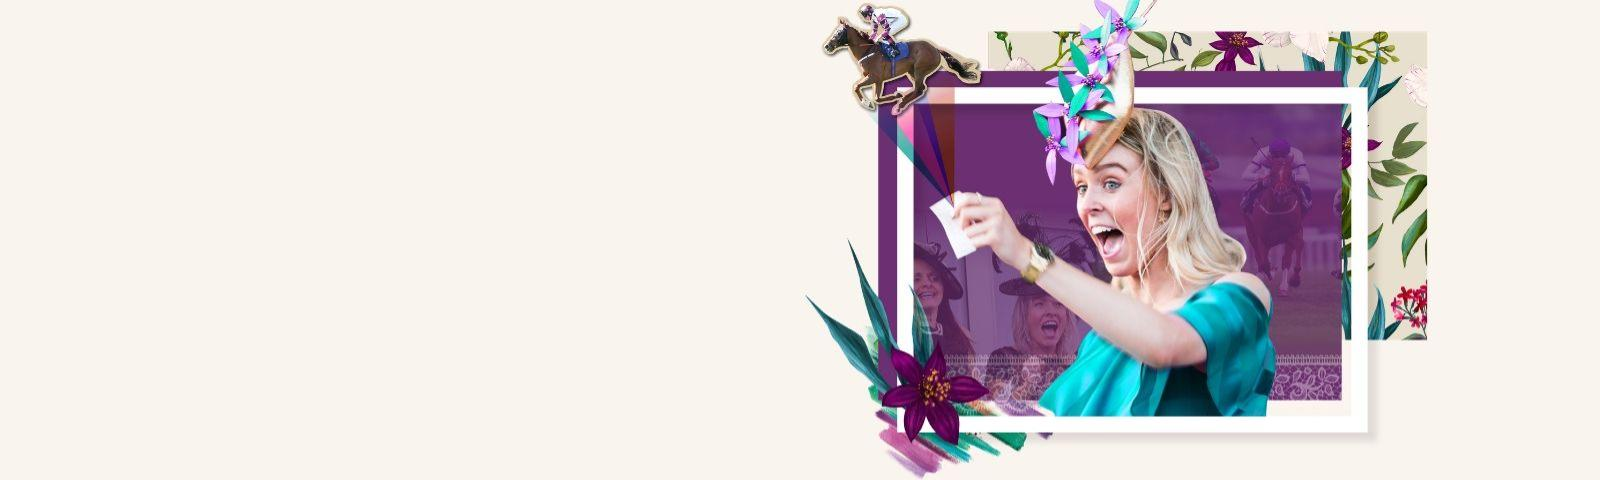 Promotional banner for Bath Racecourse Ladies Day 2020. Experience exciting live racing and ladies day fashion.